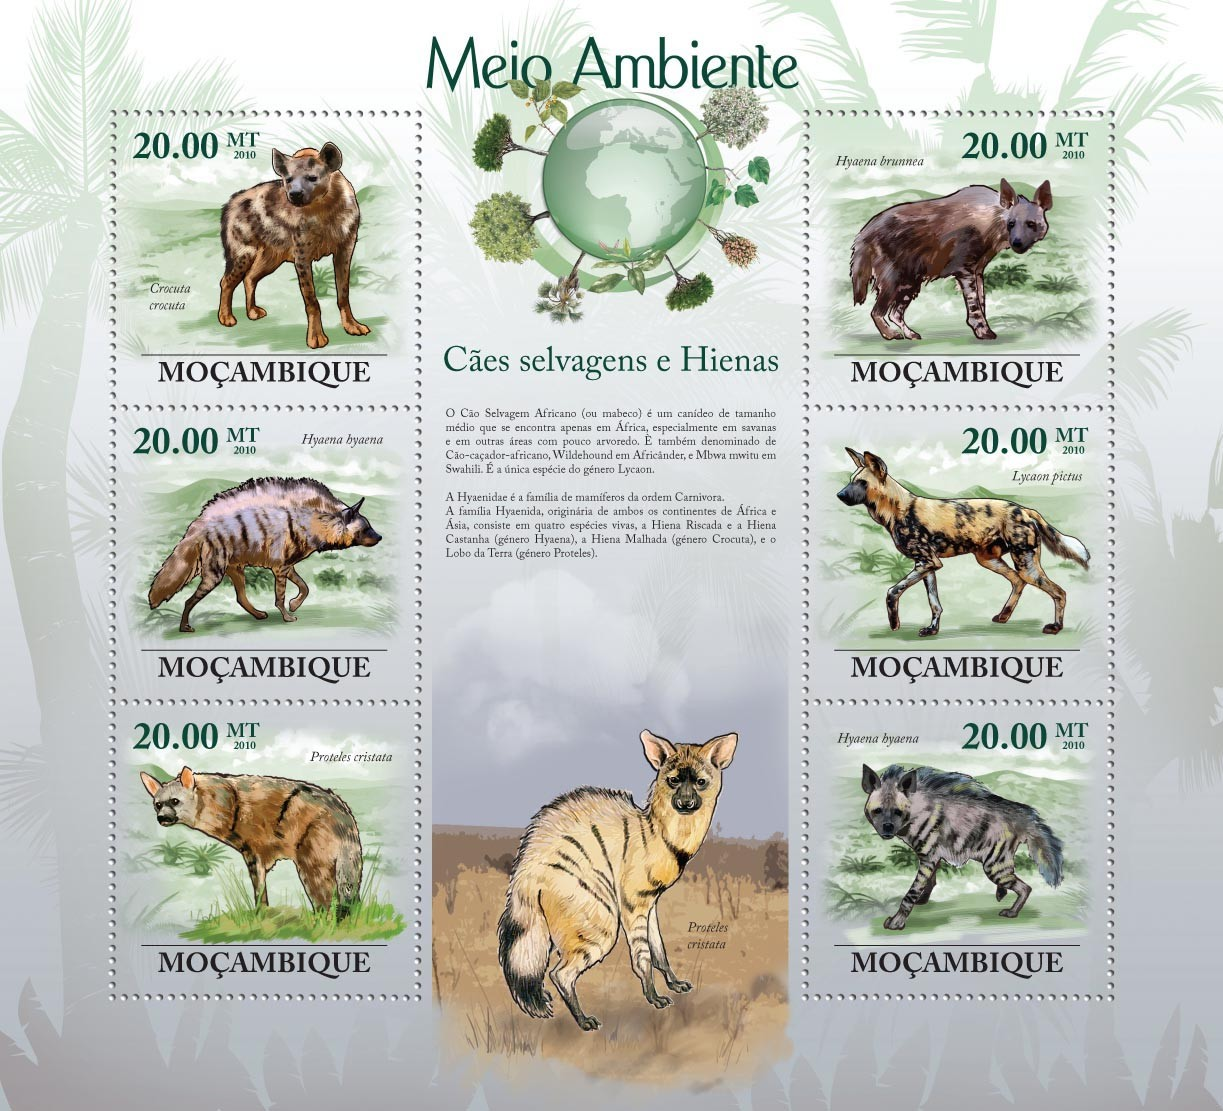 Wild Dogs & Hyenas,  ( Crocuta crocuta, Hyaena byaena, Lycaon pictus, Proteles cristata, etc..) - Issue of Mozambique postage Stamps